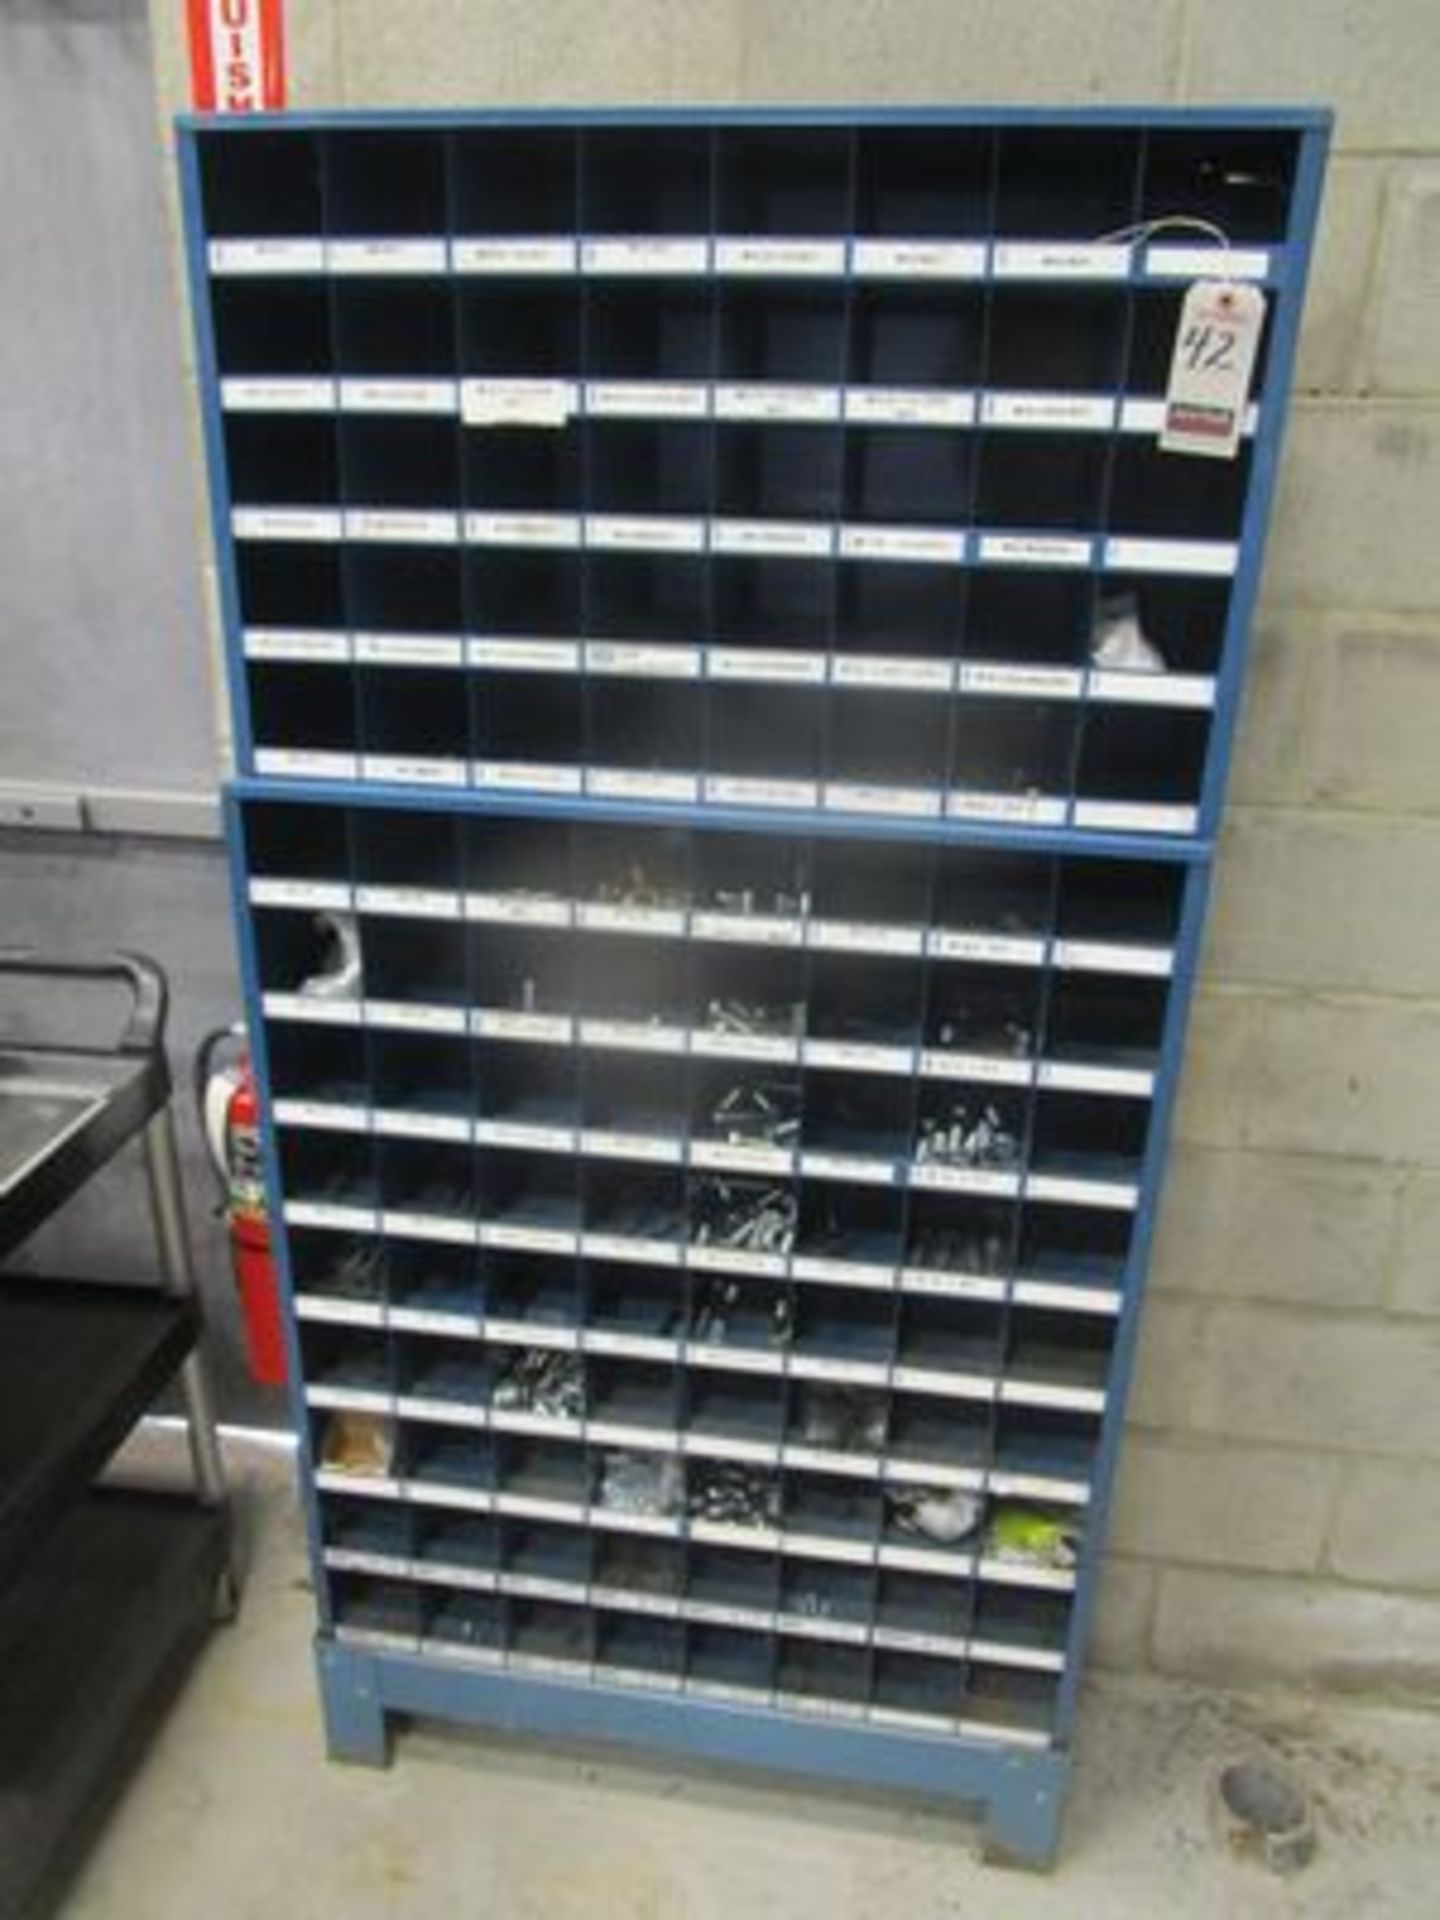 Lot 42 - ASS'T METAL PARTS CABINETS W/ NUTS, BOLTS, EYELETS, ETC.